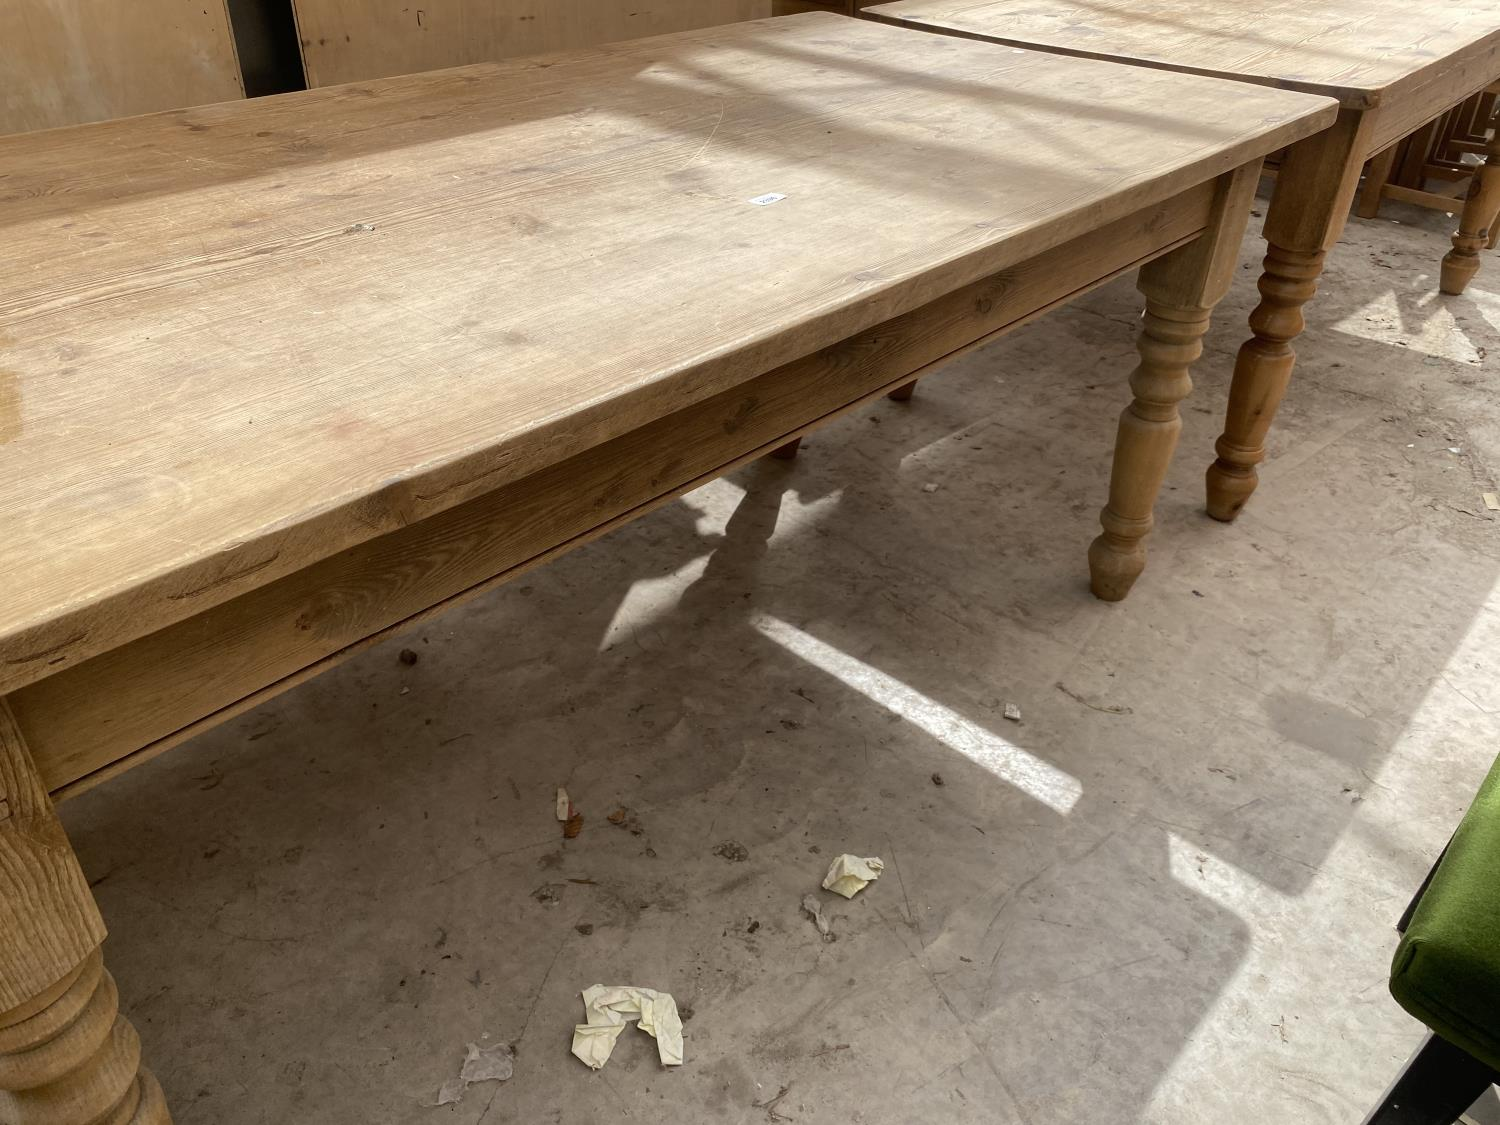 """A VICTORIAN STYLE PINE KITCHEN TABLE ON TURNED LEGS, 72X35.5"""" - Image 4 of 4"""